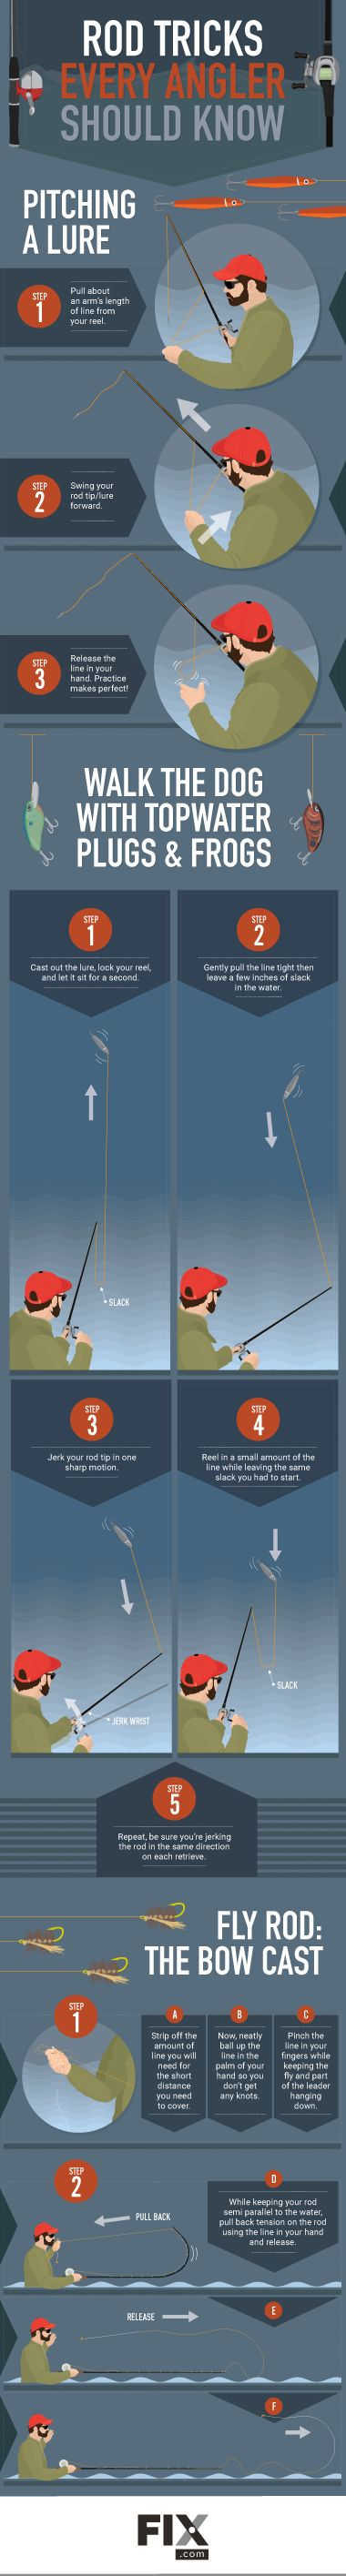 Fishing Rod Tricks For Tight Casts | Fix.com